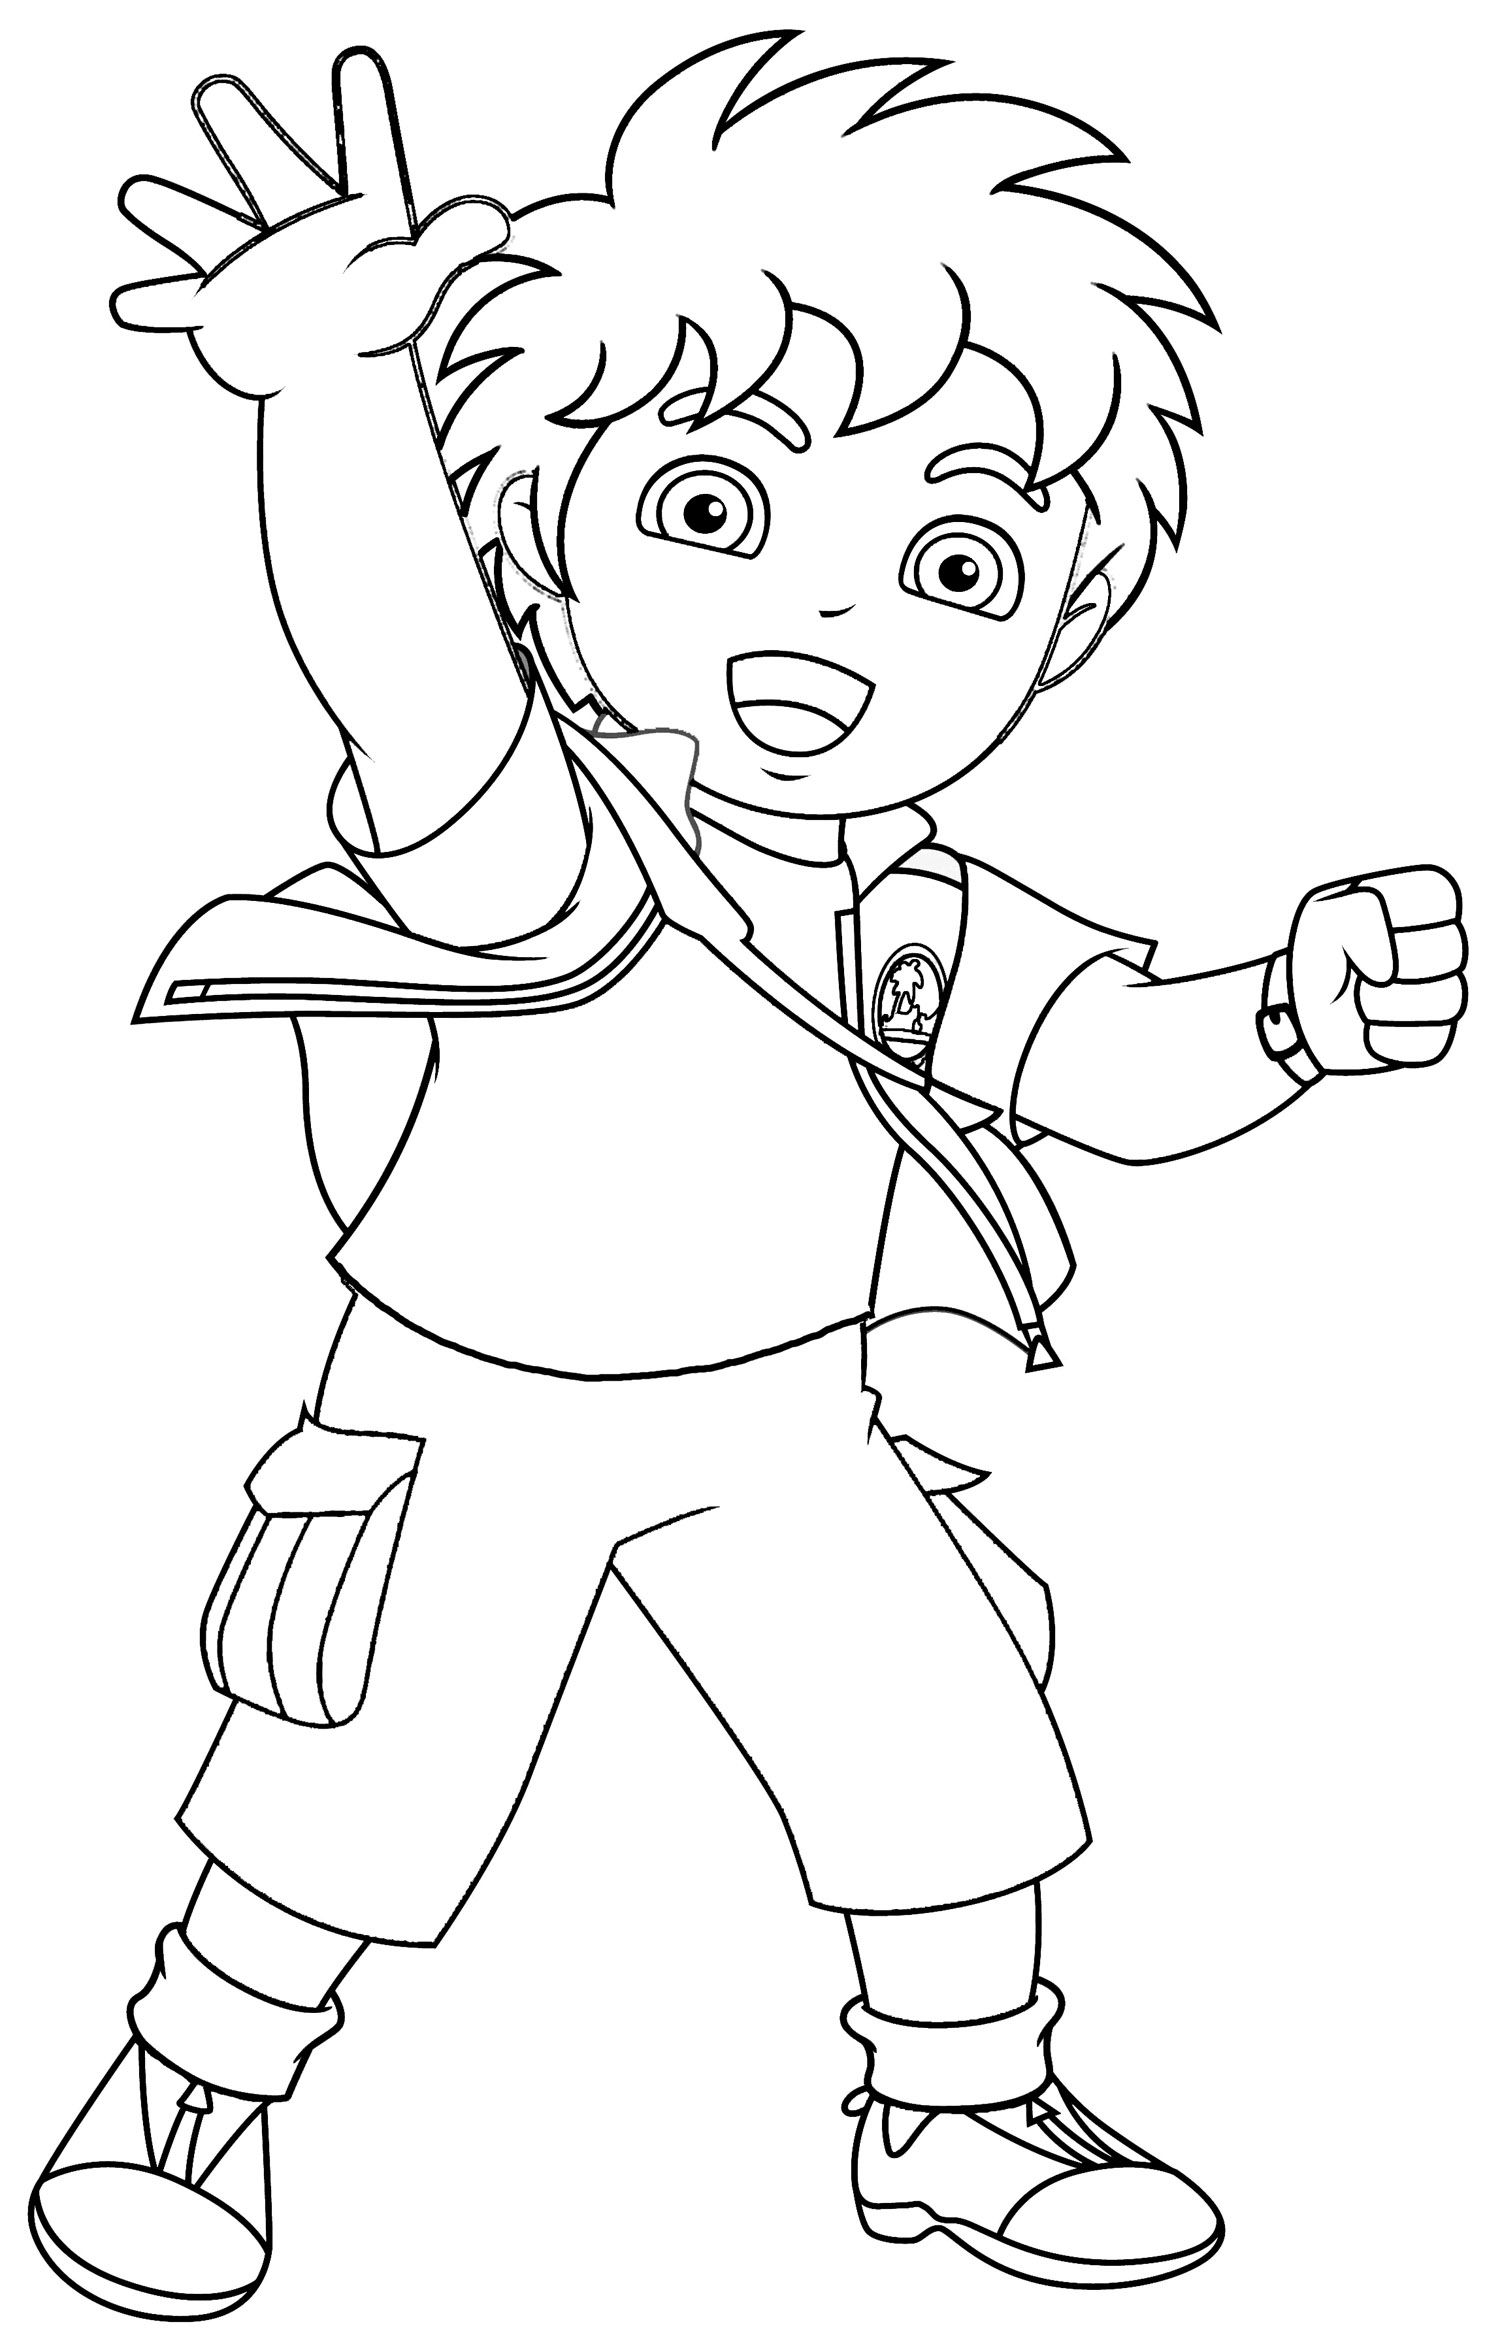 deigo coloring pages - photo#6